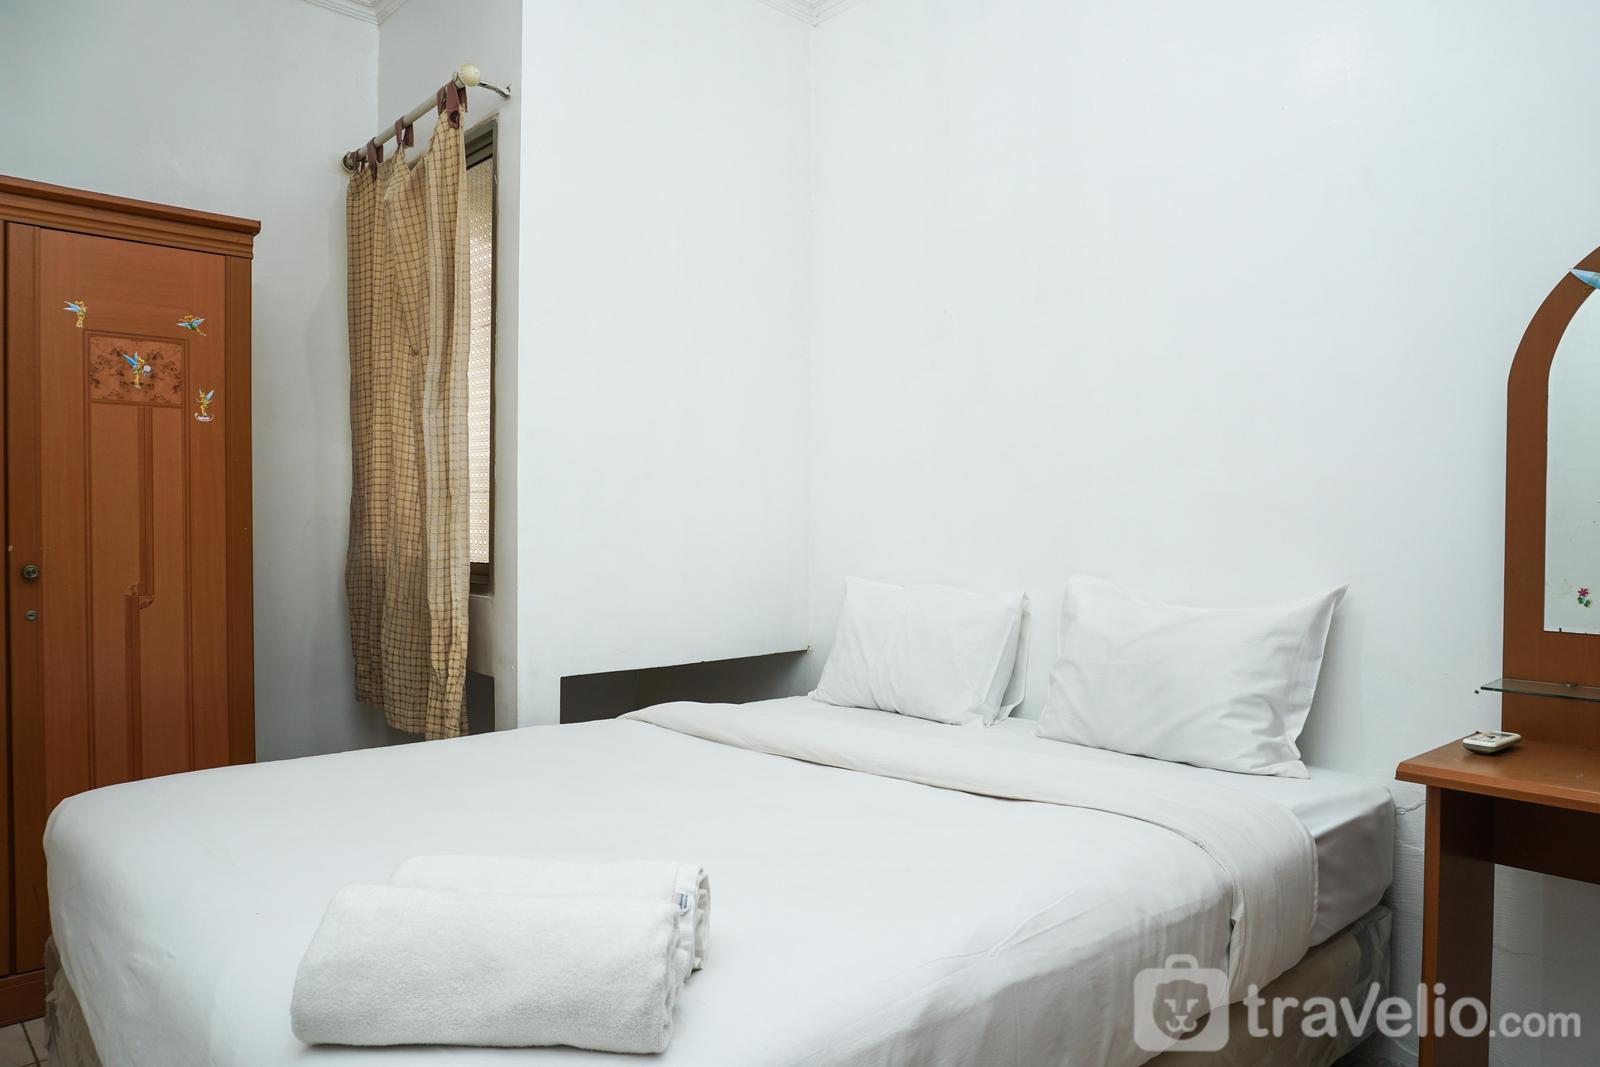 Gajah Mada Mediterania - Affordable 1BR Mediterania Gajah Mada Apartment By Travelio